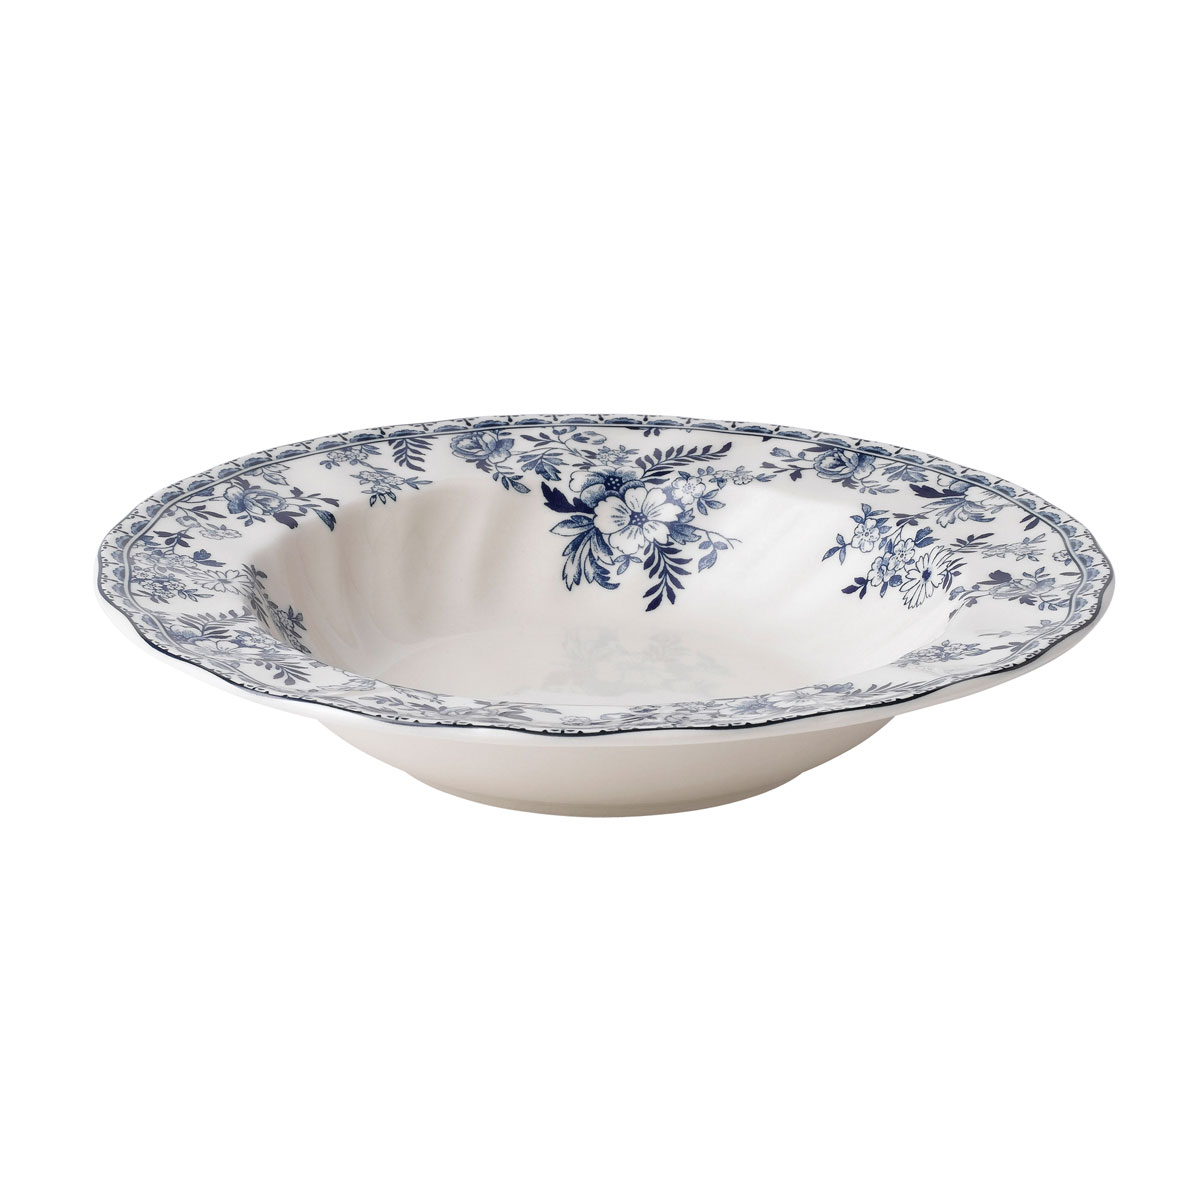 "Johnson Brothers Devon Cottage Rim Soup, Pasta Bowl 8.25"", Single"